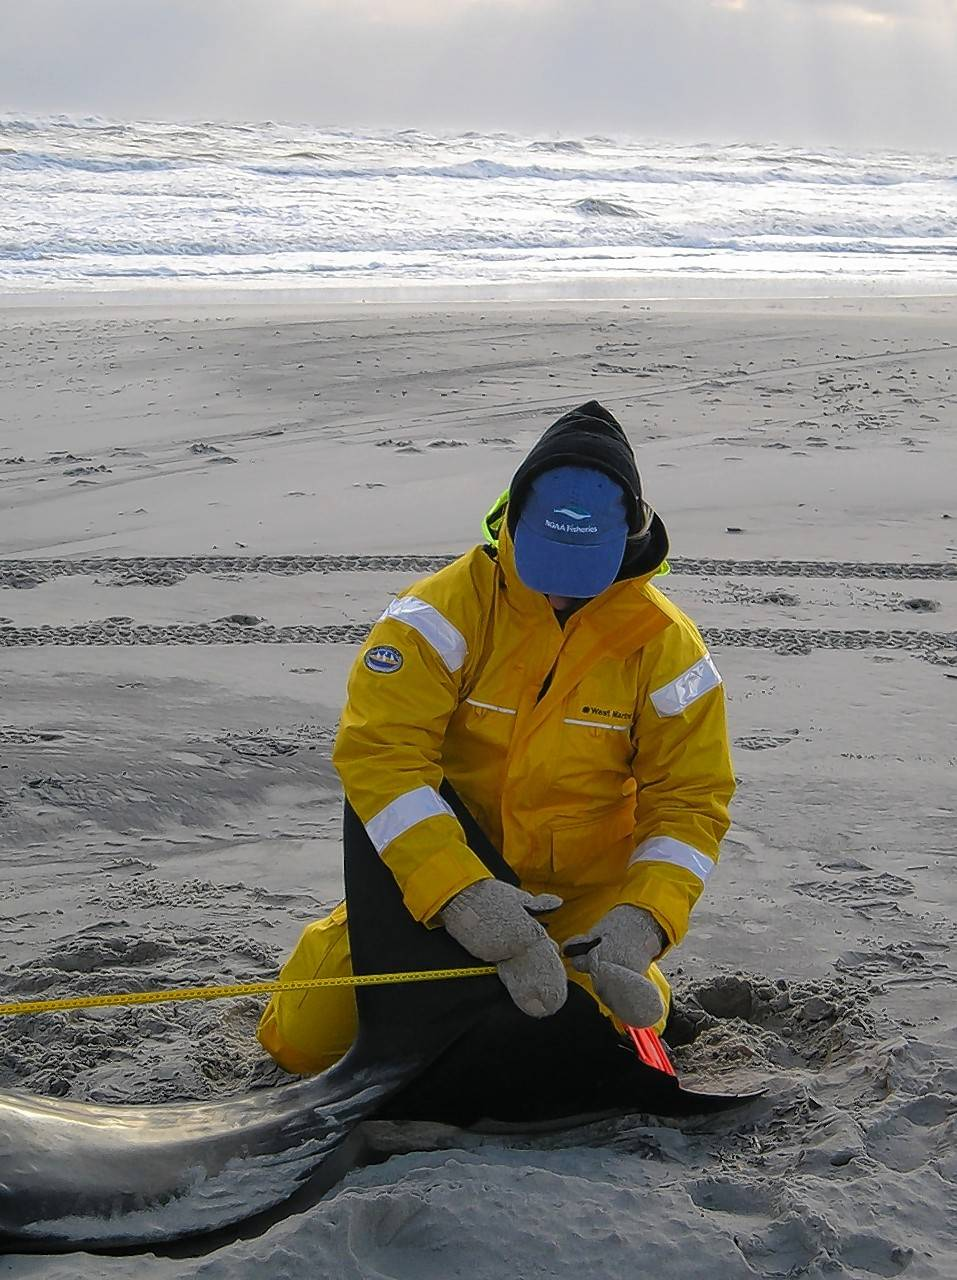 A U.S. Marine Mammal Health and Stranding Response Program network member aids a stranded pilot whale.